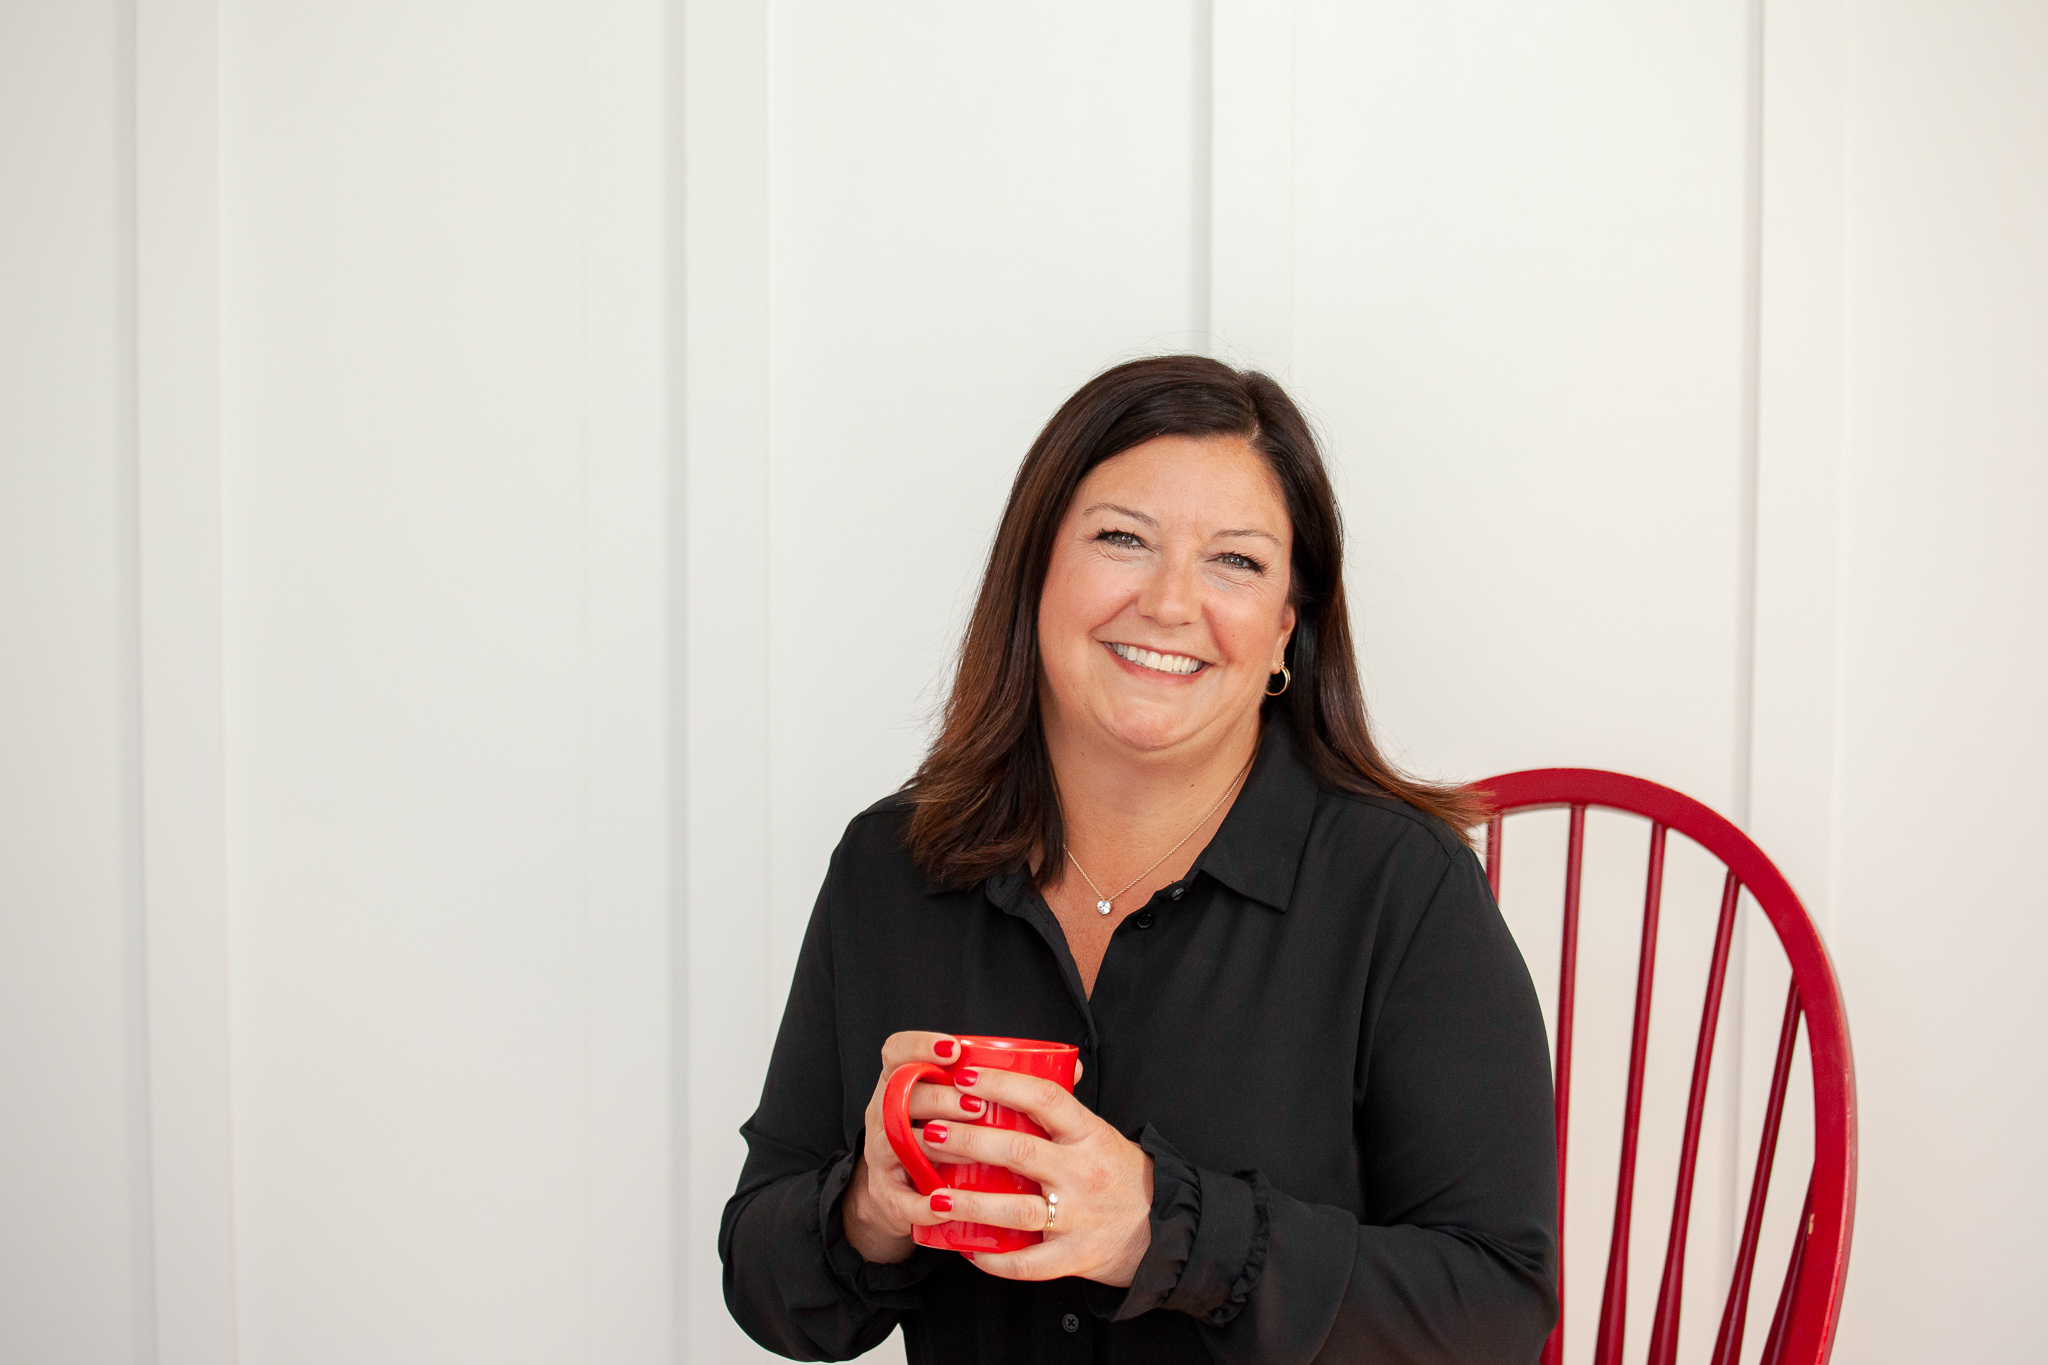 Liz Koehler provides professional marketing, writing, and web design services for small businesses